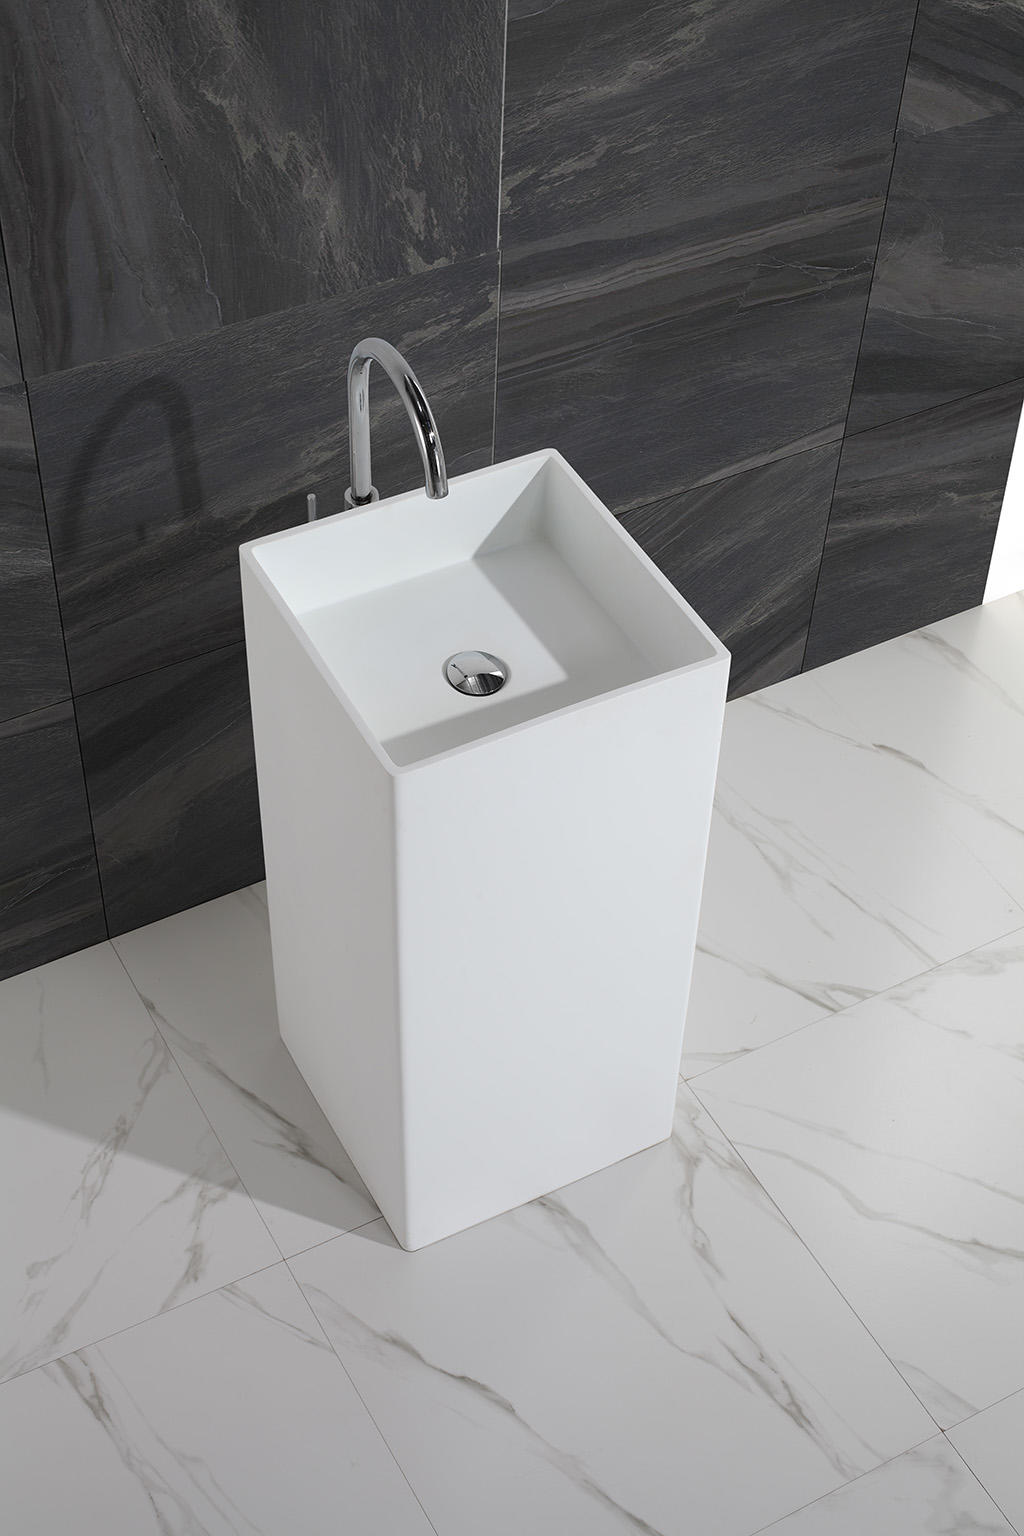 KingKonree Brand marble bathroom free standing basins artificial supplier